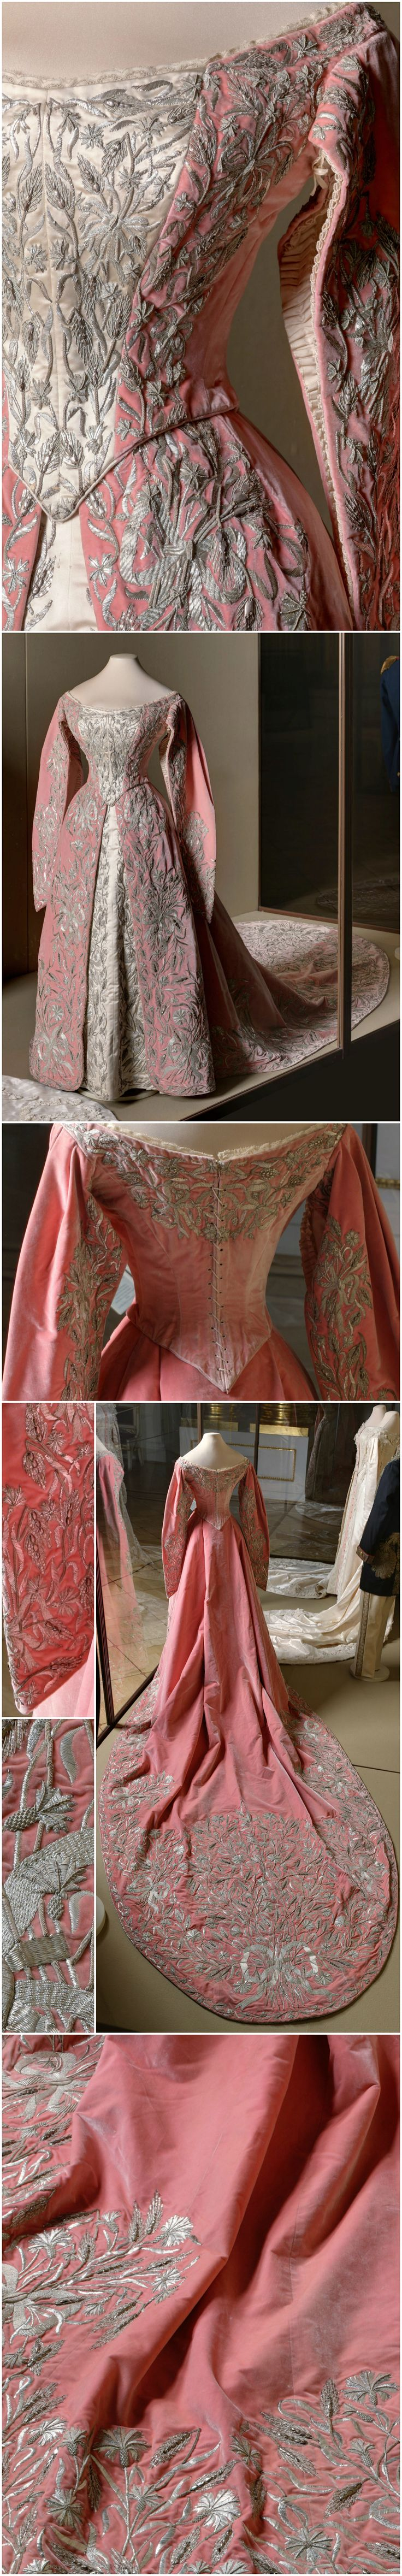 Ceremonial court dress, Ivanov workshop, St. Petersburg, Russia, late 19th to early 20th centuries. State Hermitage Museum, via Ghosts of Imperial Russia's Tumblr. CLICK FOR VERY LARGE, HI-RES IMAGES.